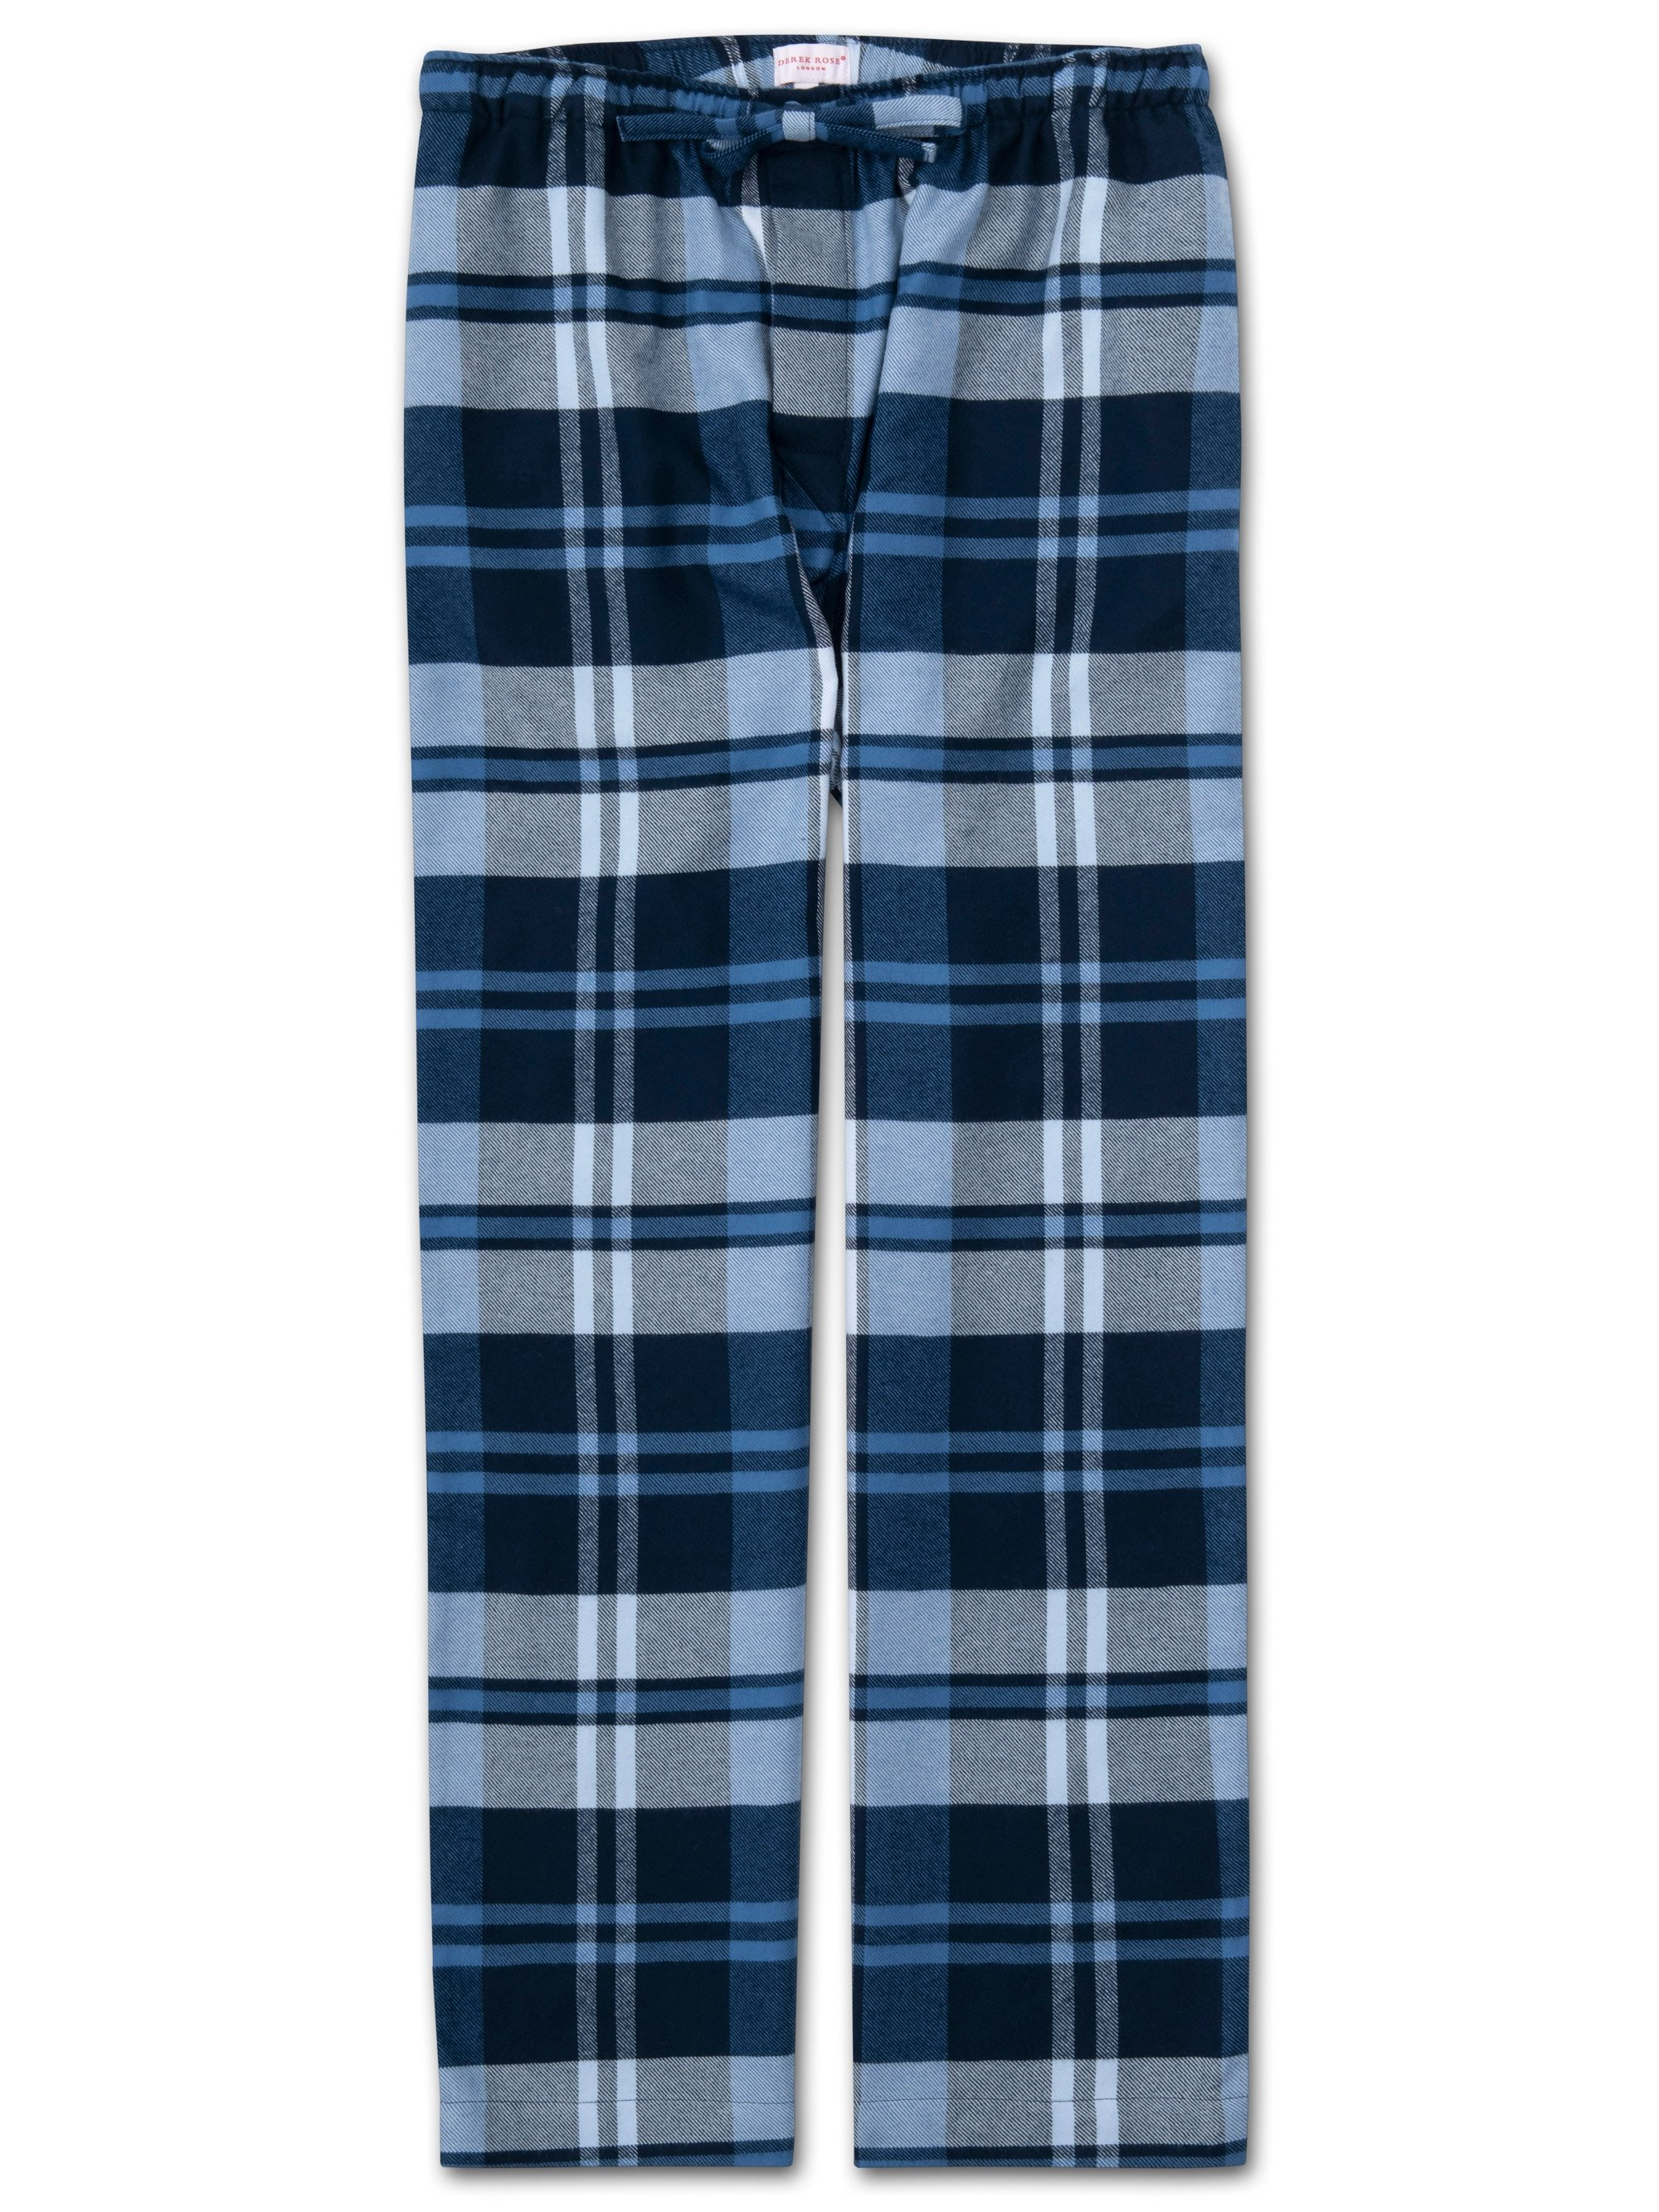 Men's Lounge Trousers Kelburn 12 Brushed Cotton Check Navy